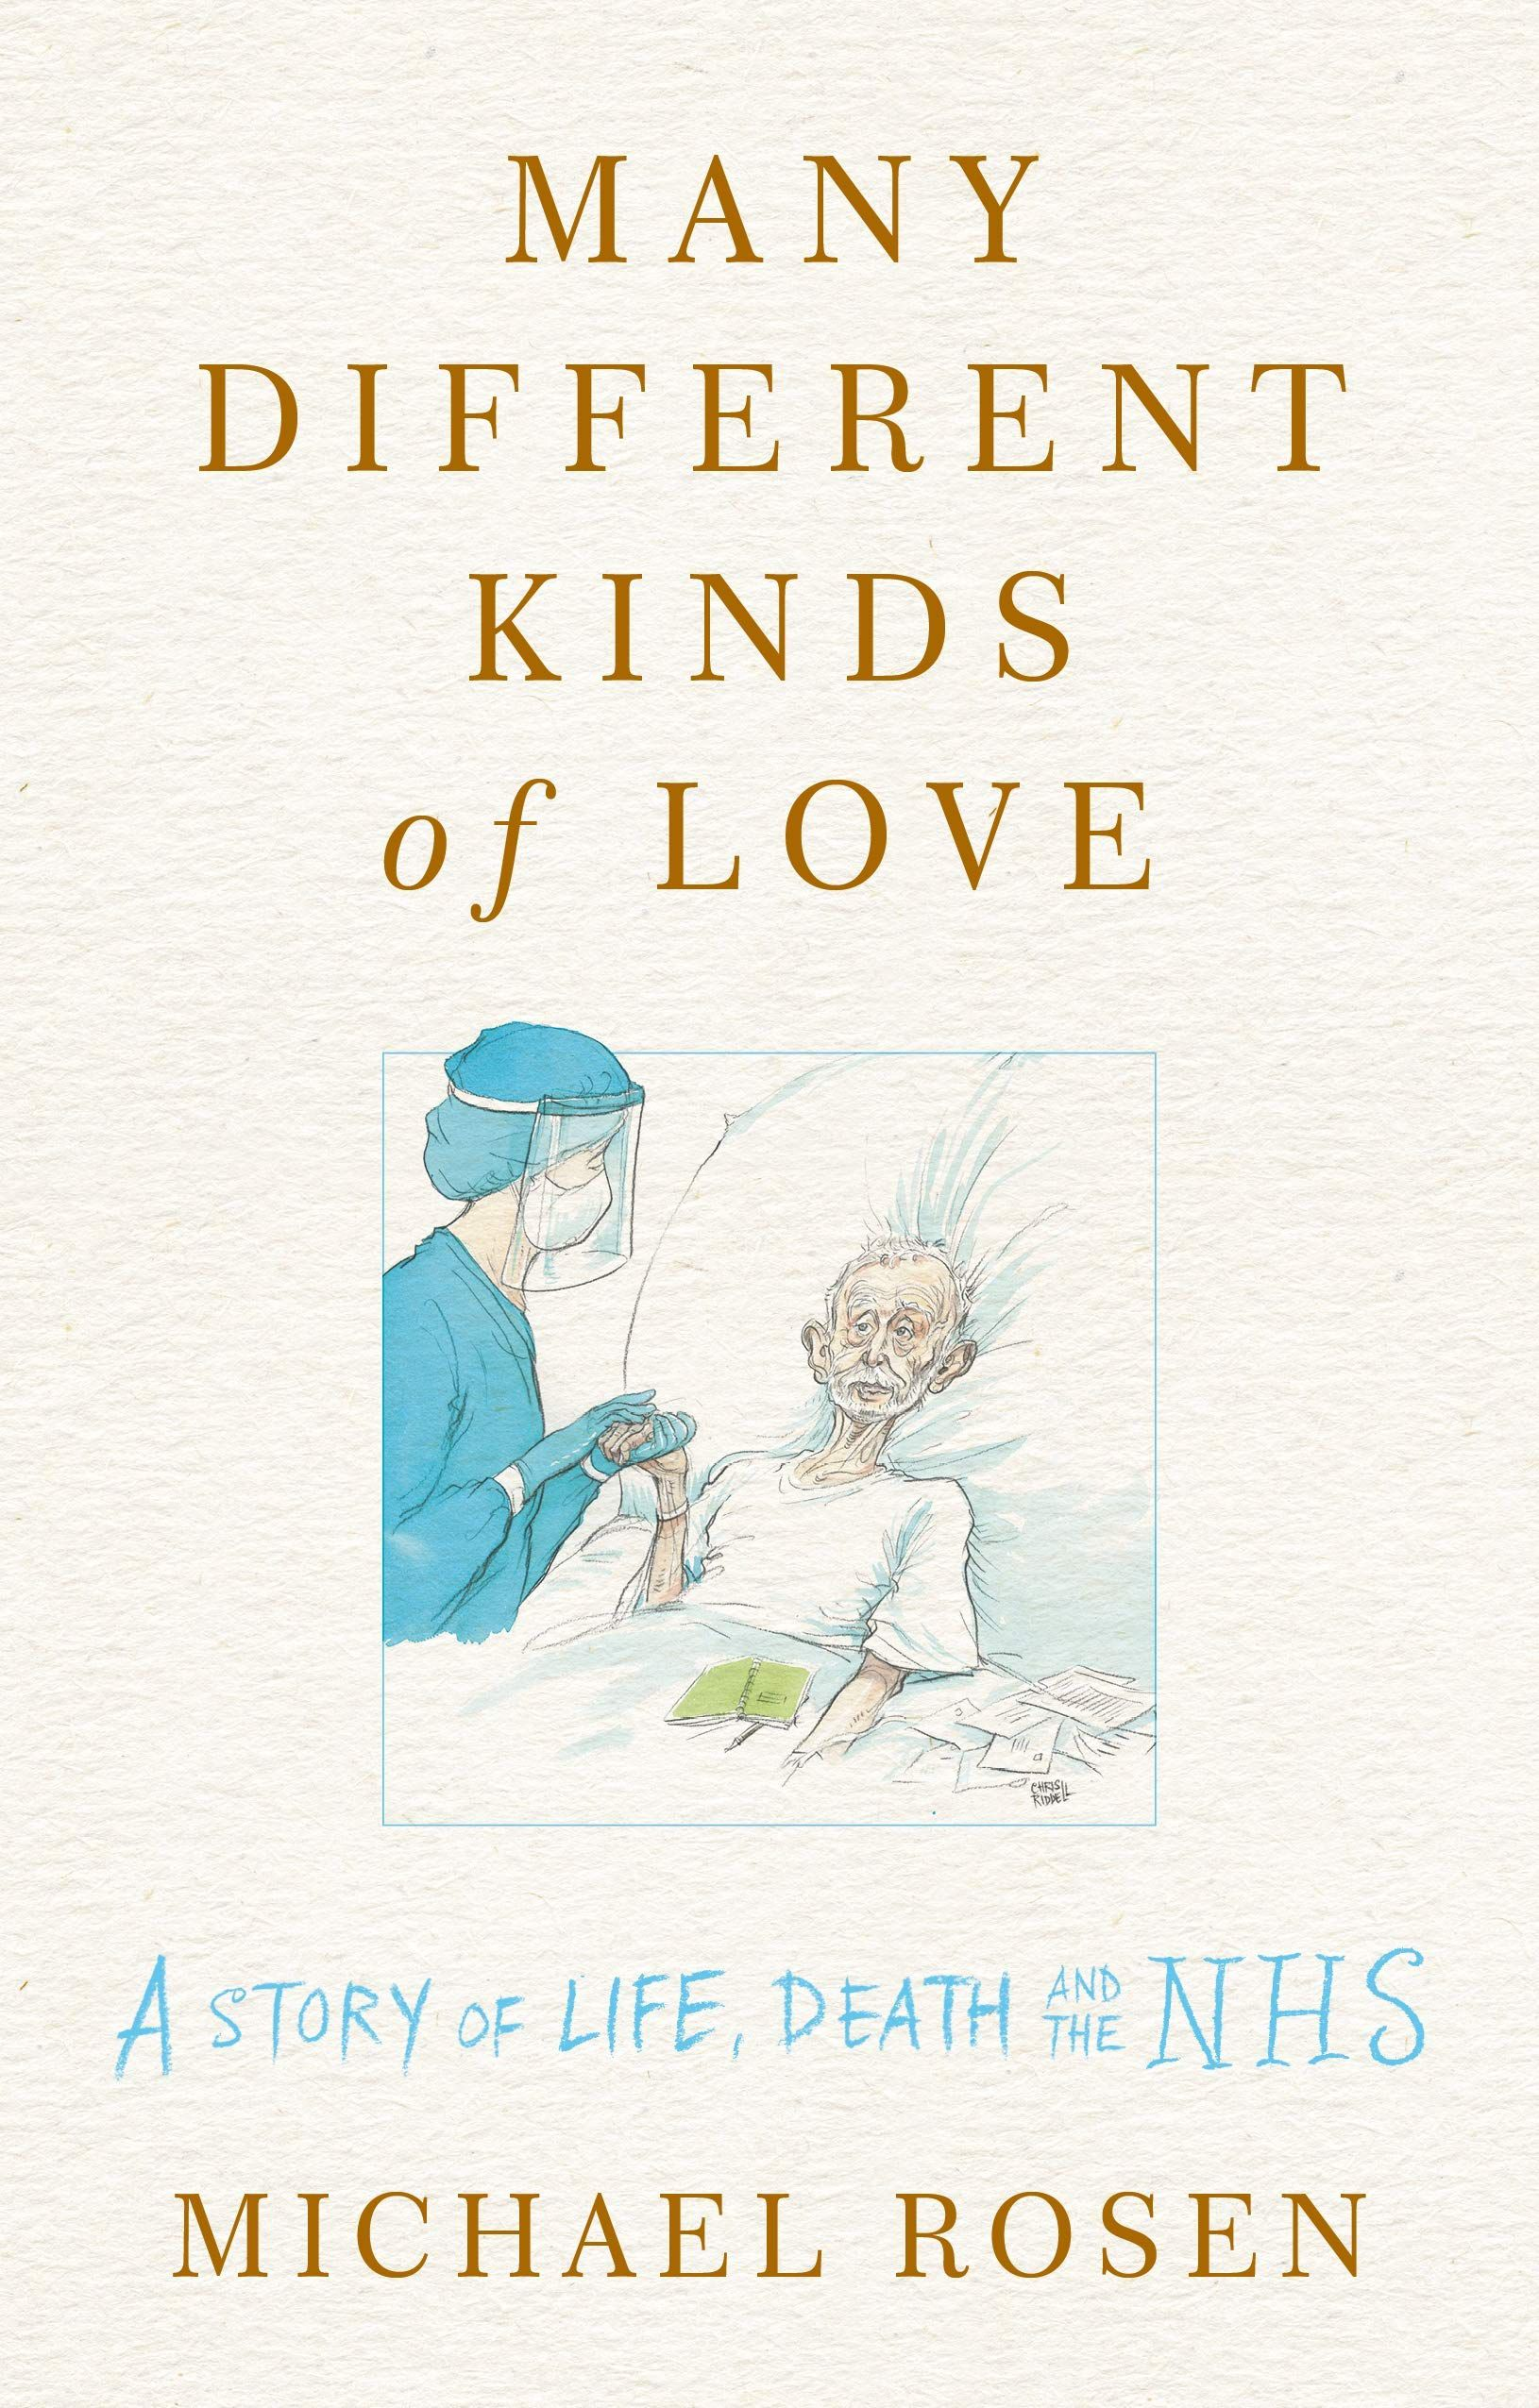 many different kinds of love by michael rosen book cover